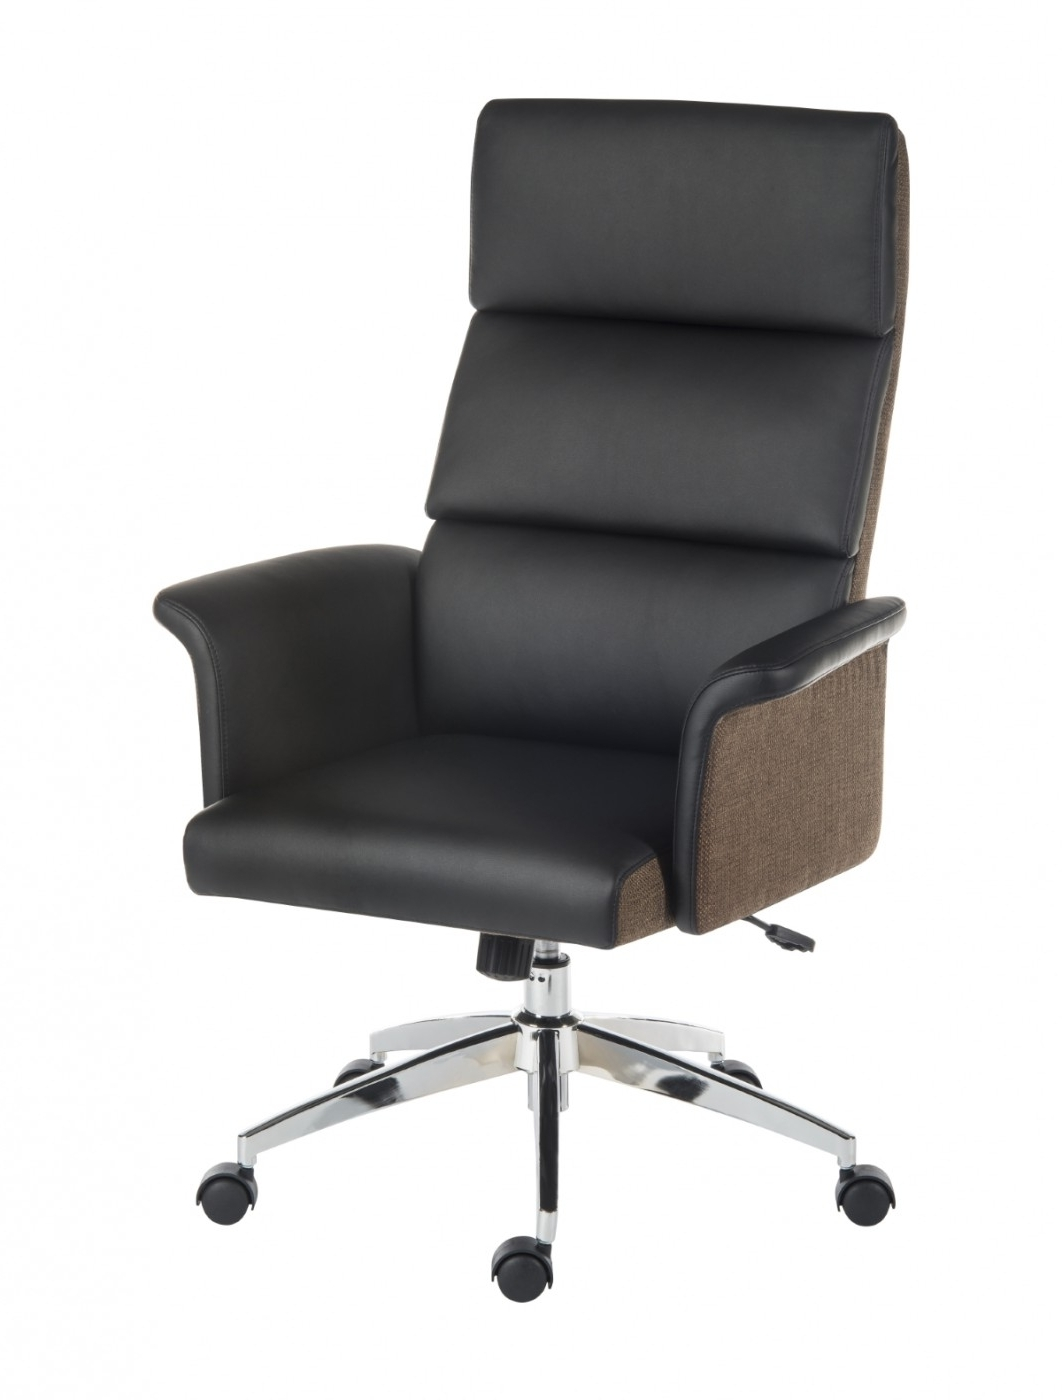 Best And Newest Office Chairs – Teknik Elegance High Back Executive Office Chair Within High Back Executive Office Chairs (View 2 of 20)